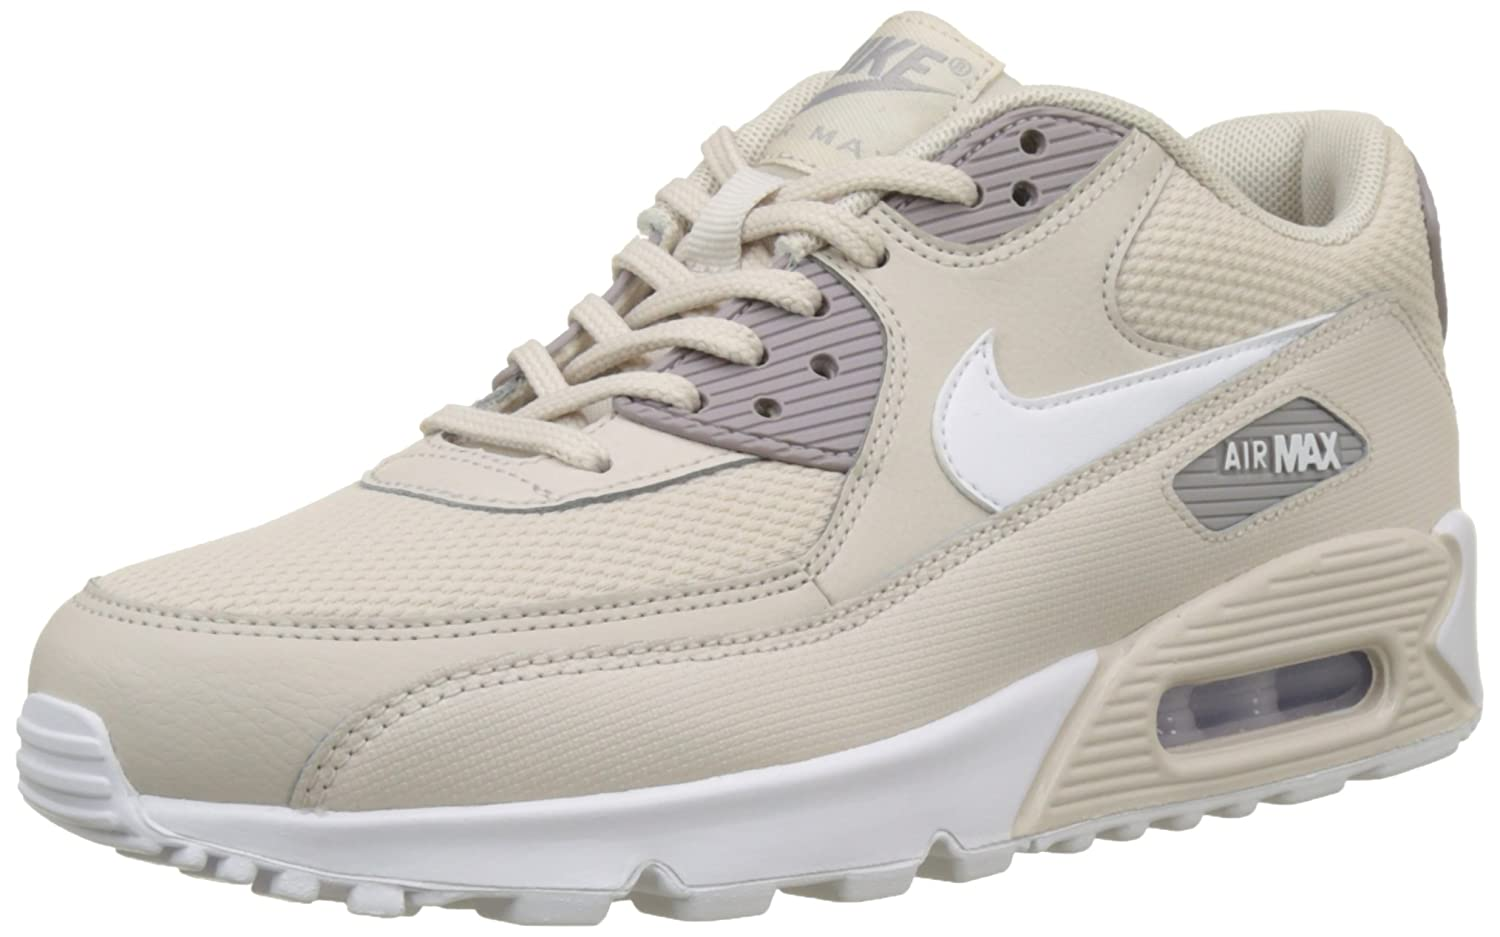 los angeles ff3e2 67edd Amazon.com   Nike Women s WMNS Air Max 90, Desert Sand White-Atmosphere  Grey, 7.5 US   Road Running